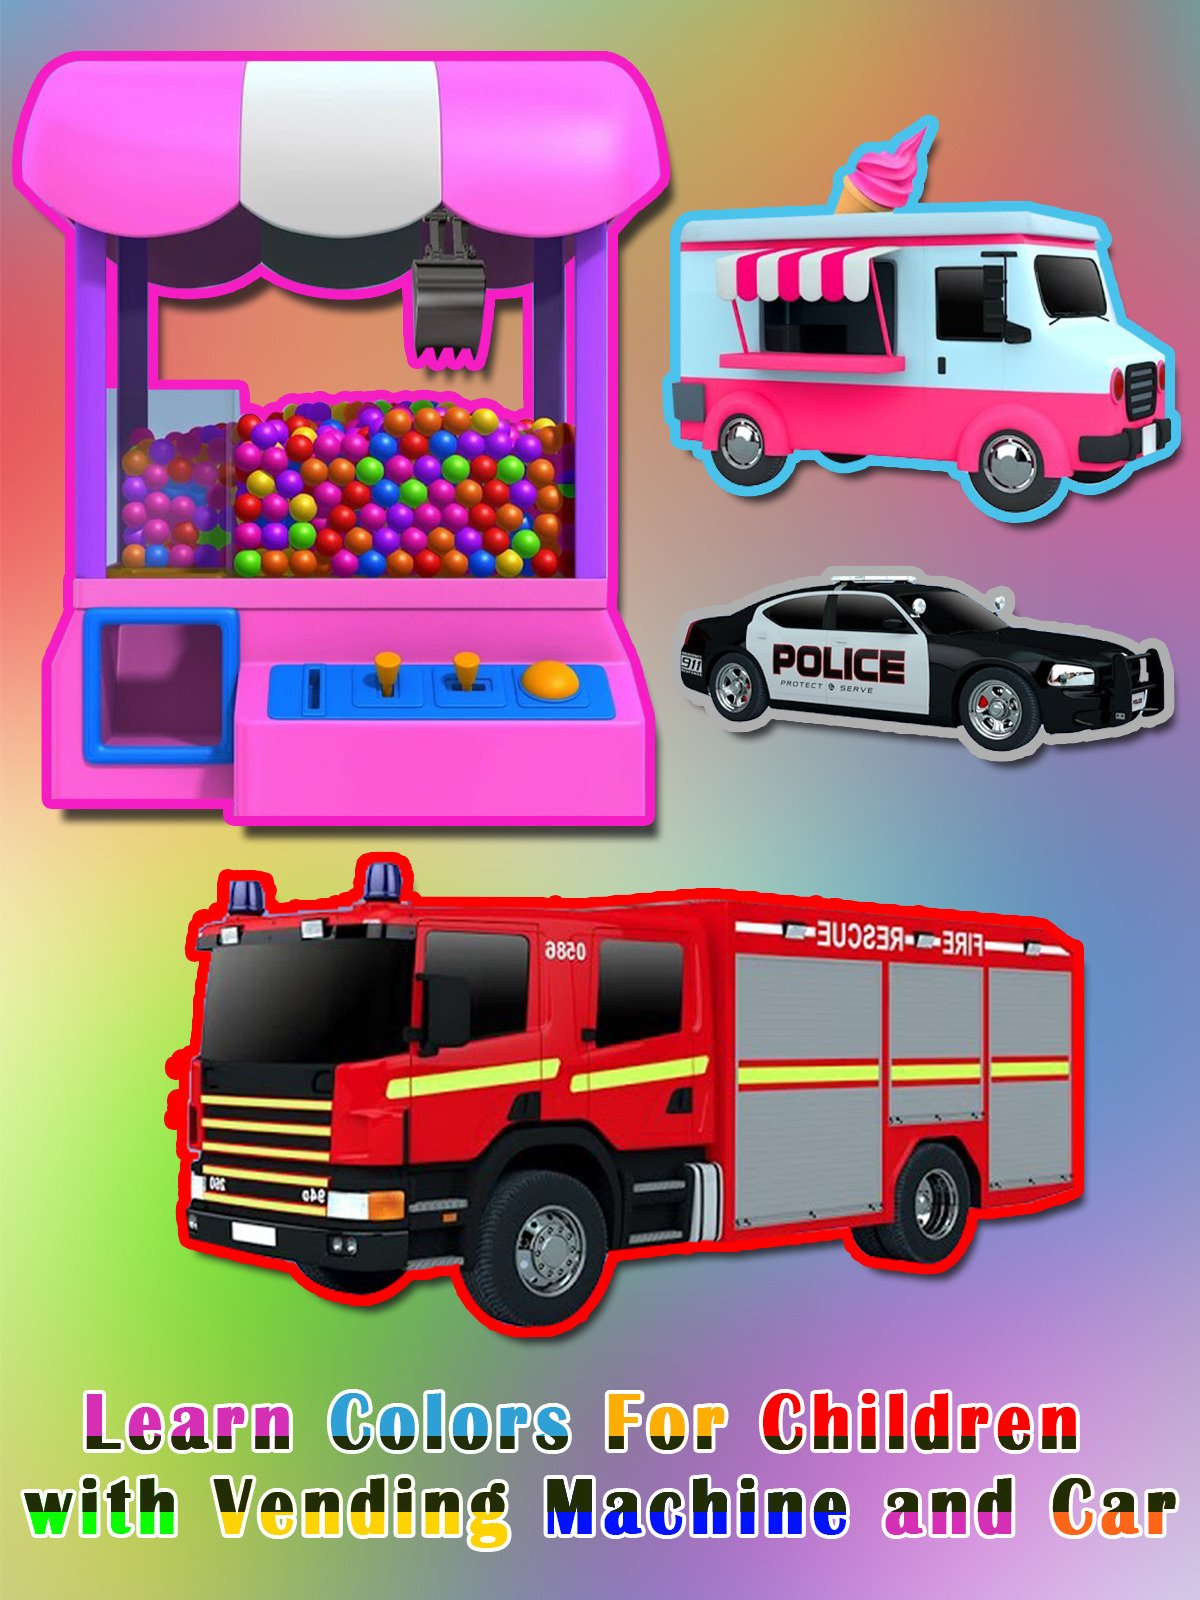 Learn Colors For Children with Vending Machine and Car